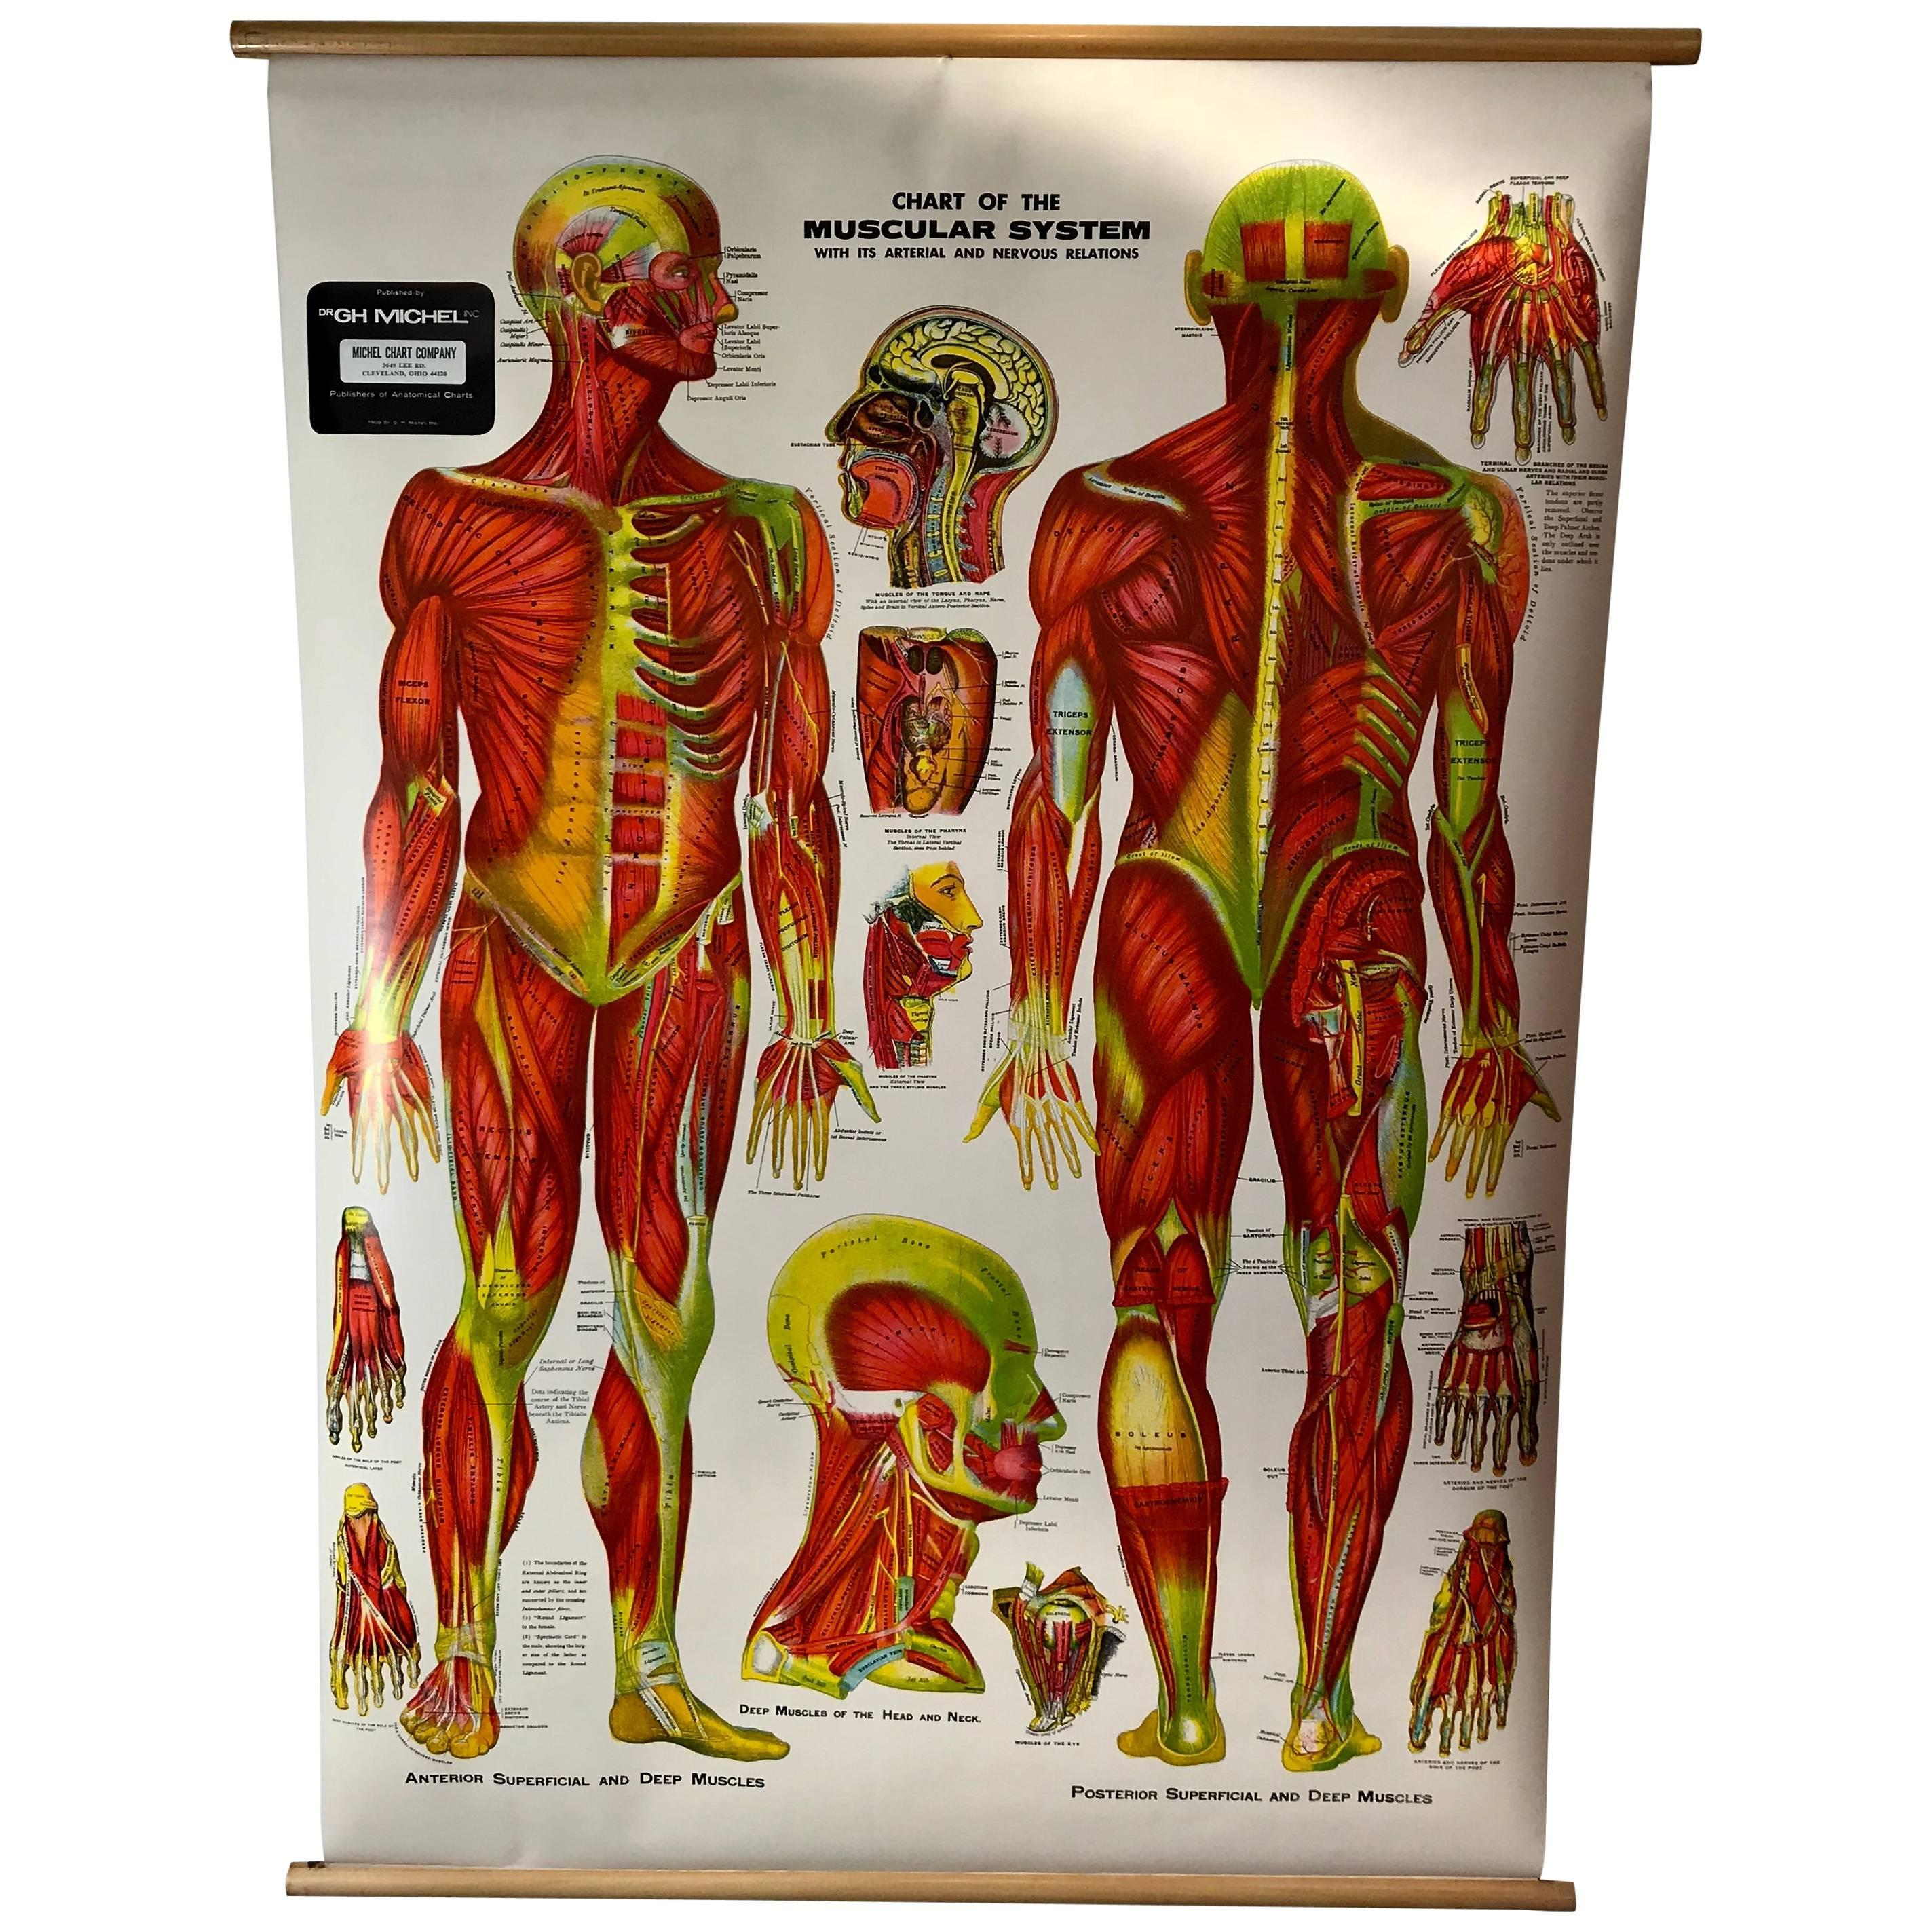 vintage anatomical pull down chart muscular system gh michel chart company for sale at 1stdibs [ 1500 x 1500 Pixel ]